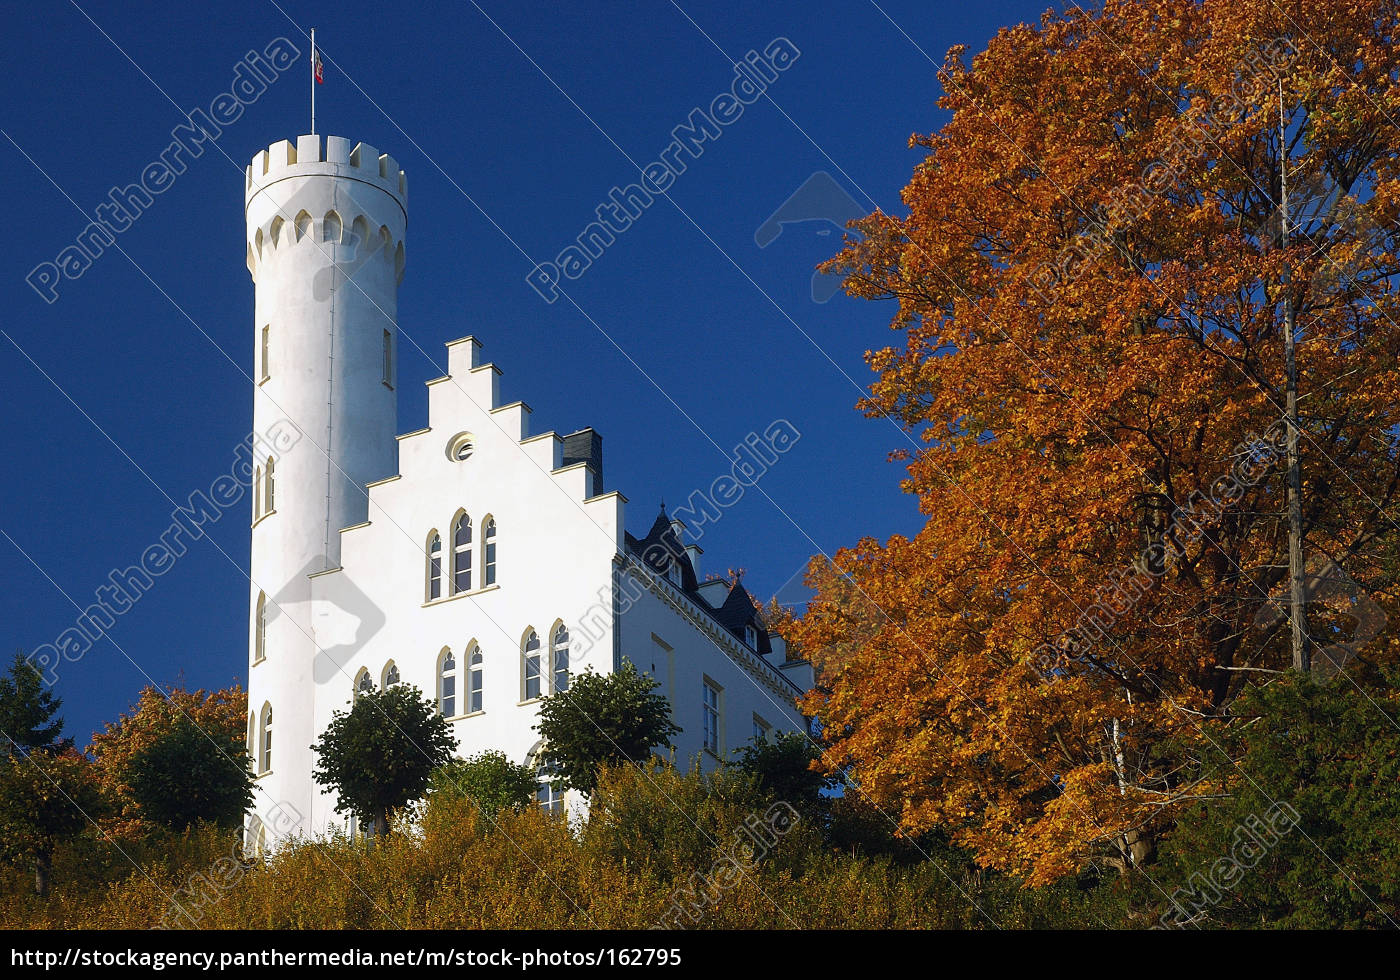 lietzow, palace, -, small, liechtenstein - 162795